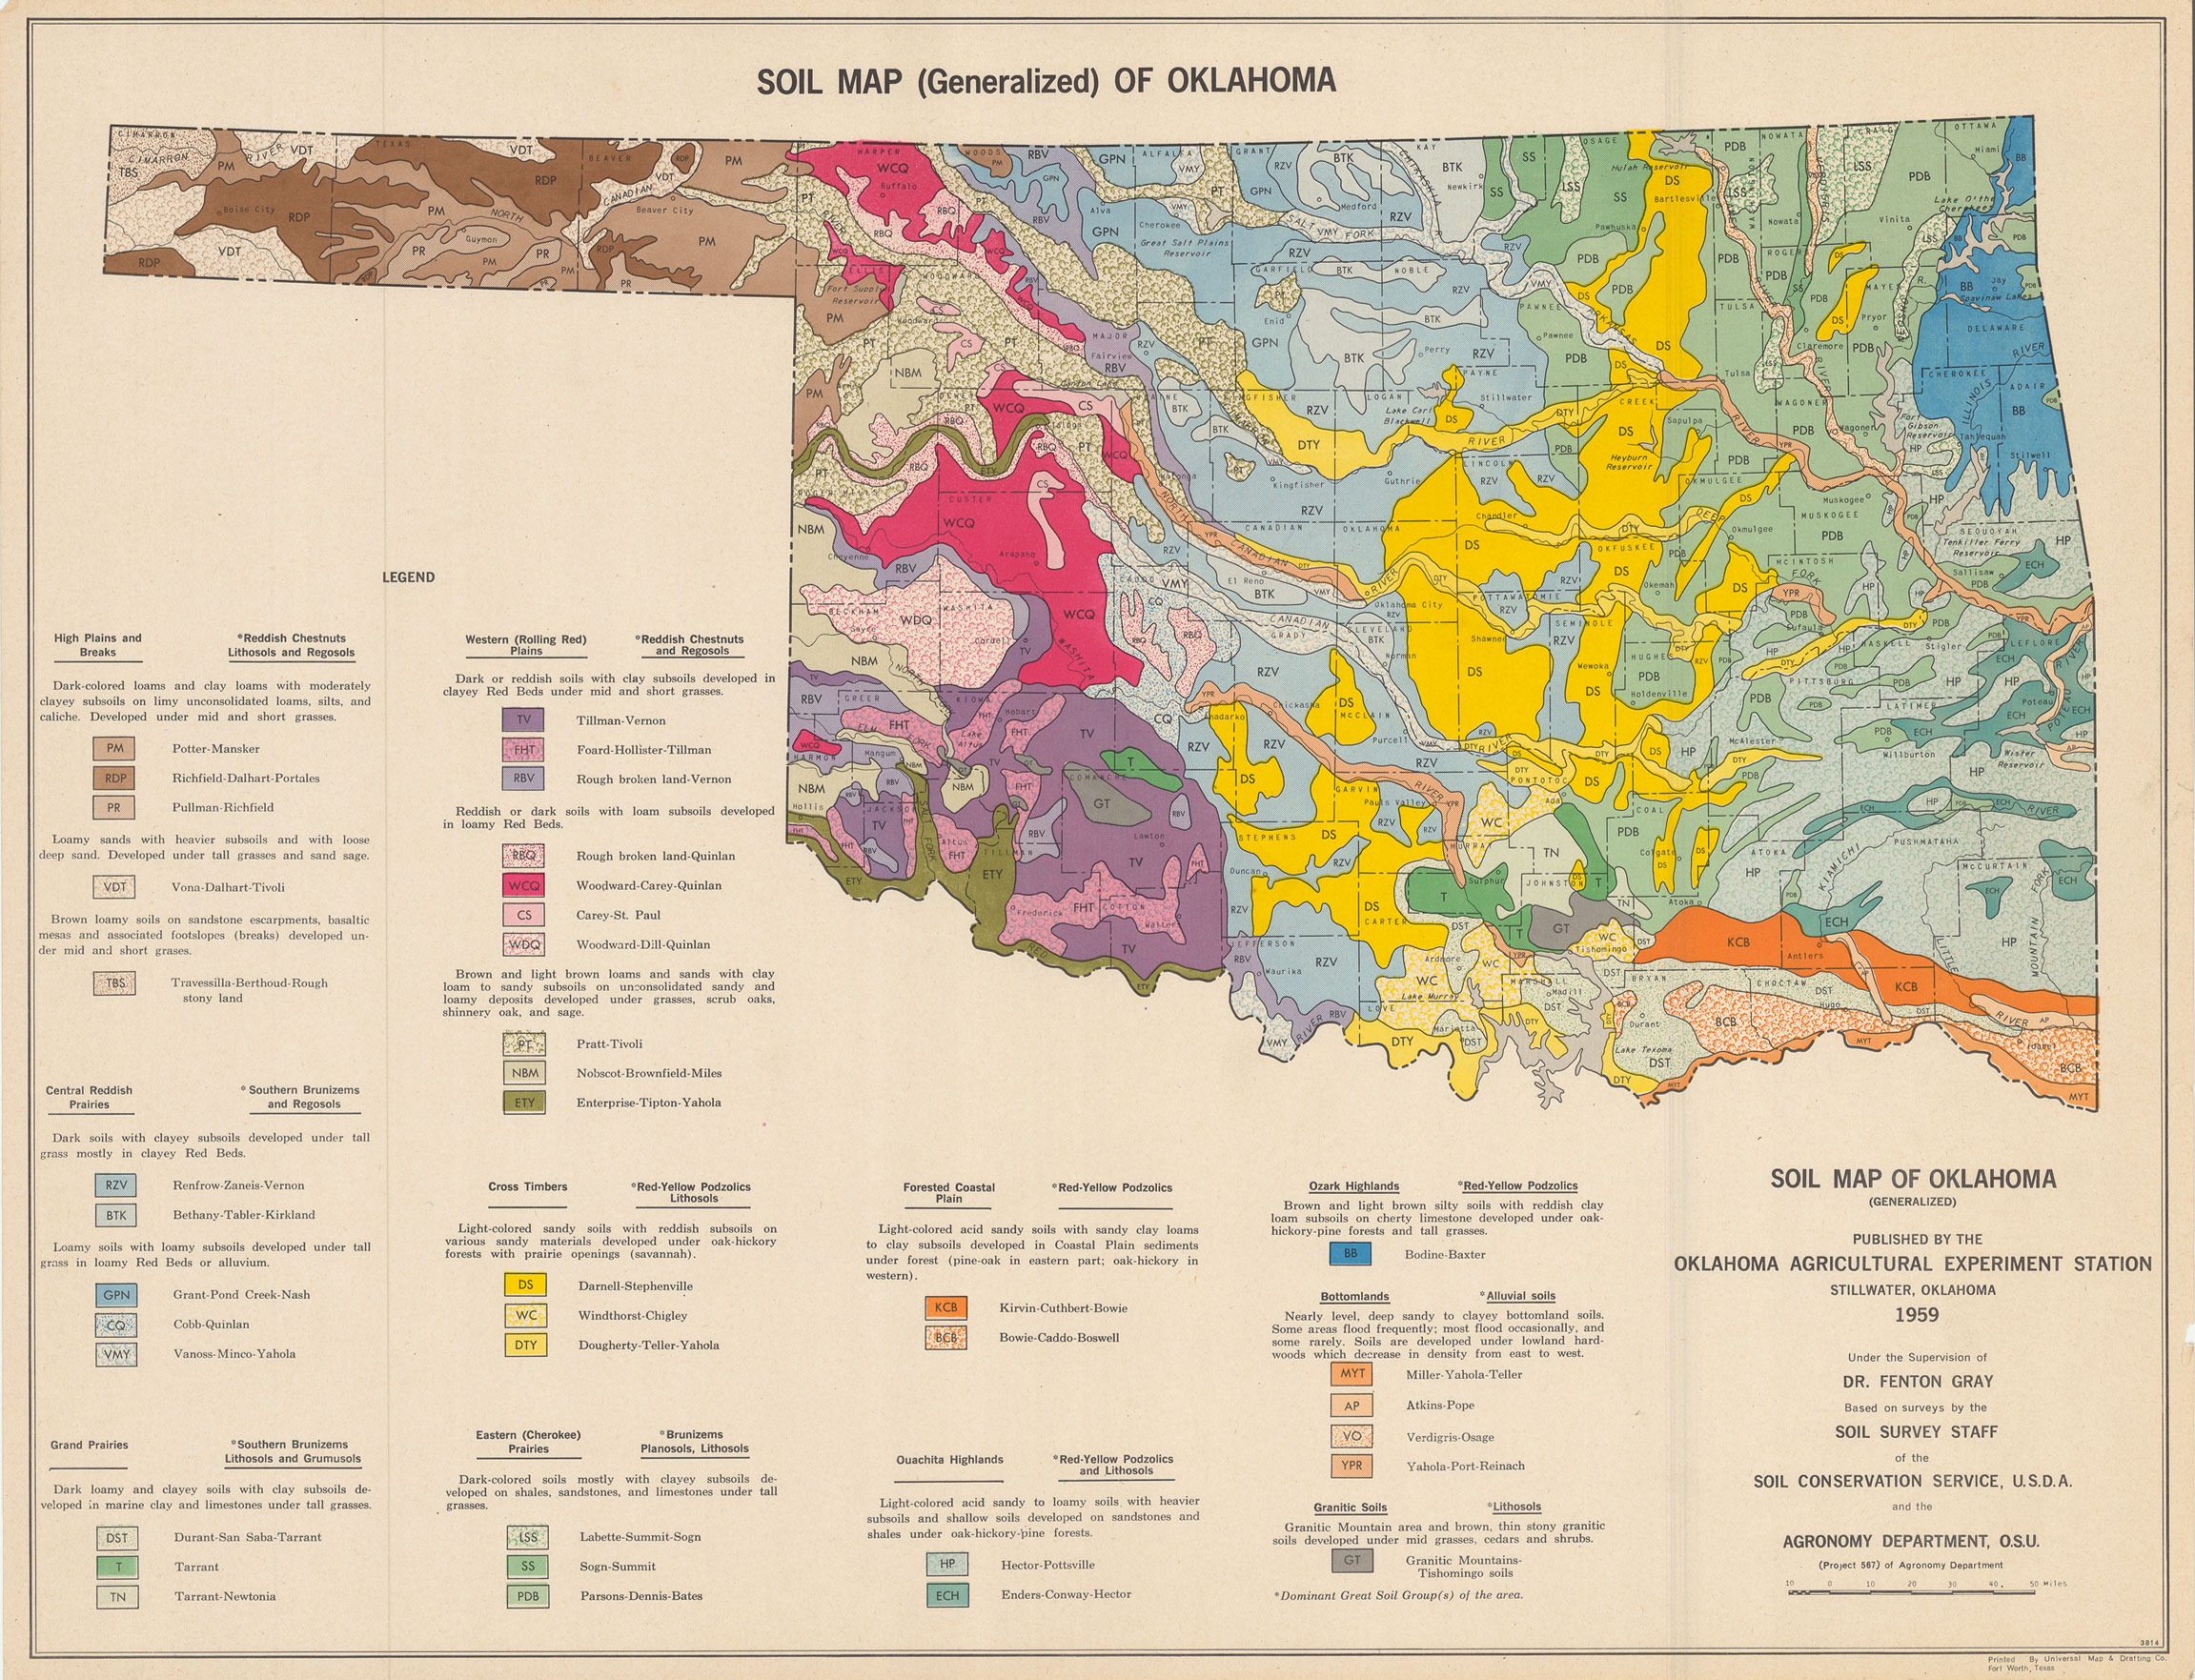 Oklahoma Topographic Map | www.topsimages.com